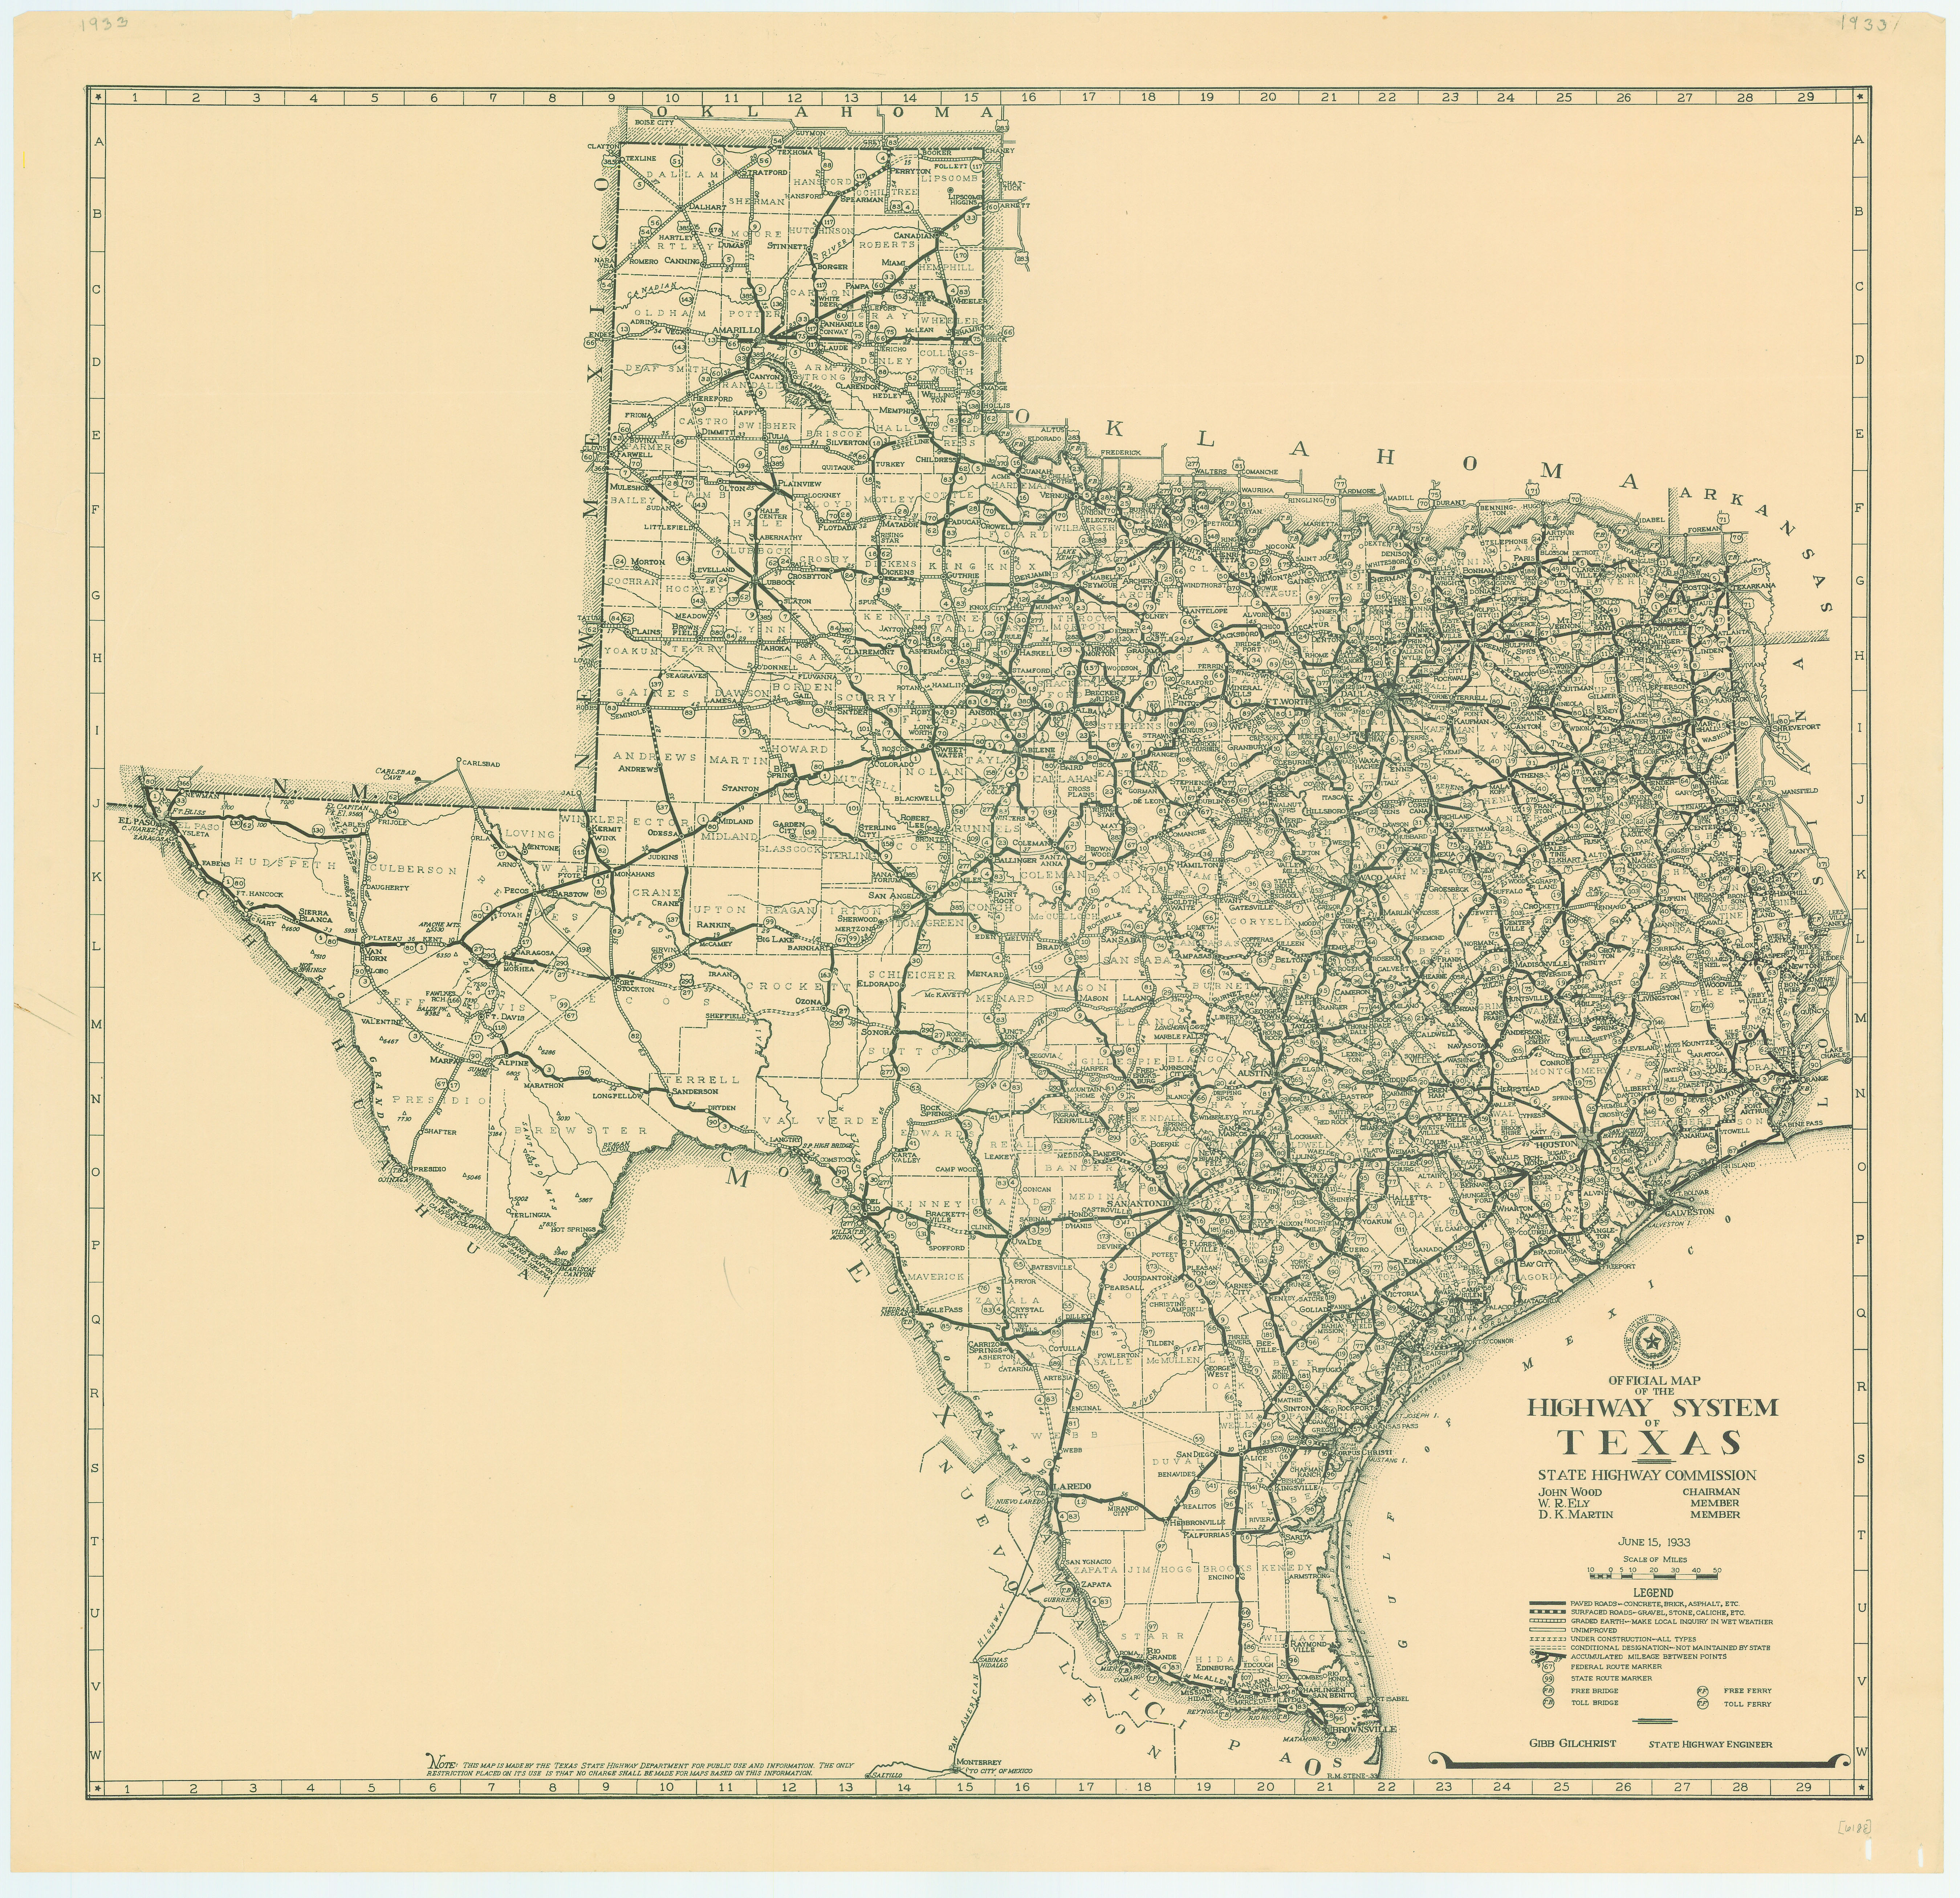 File:1933 Texas State Highway Map - Wikimedia Commons - Texas Map Wallpaper